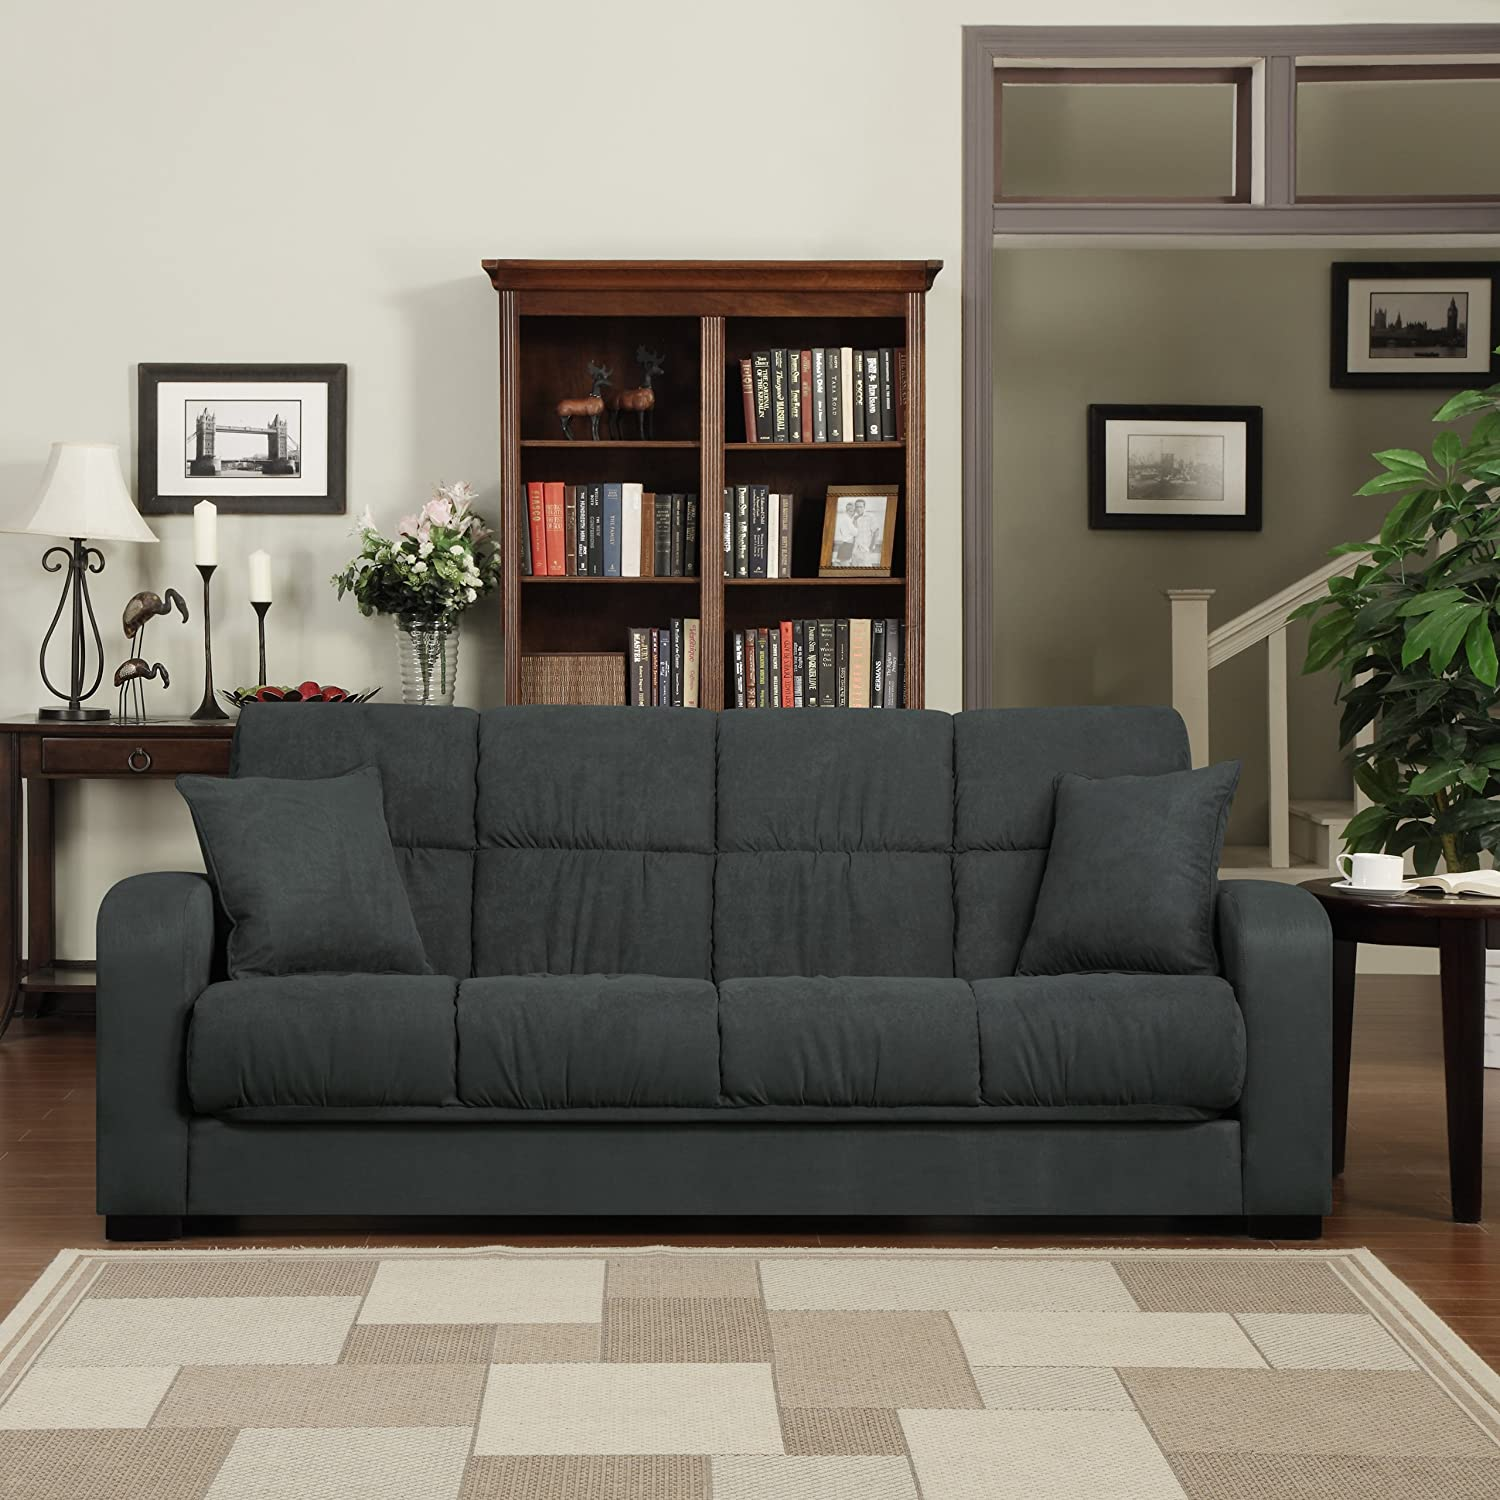 Amazon Handy Living Damen Convert a Couch in Gray Microfiber